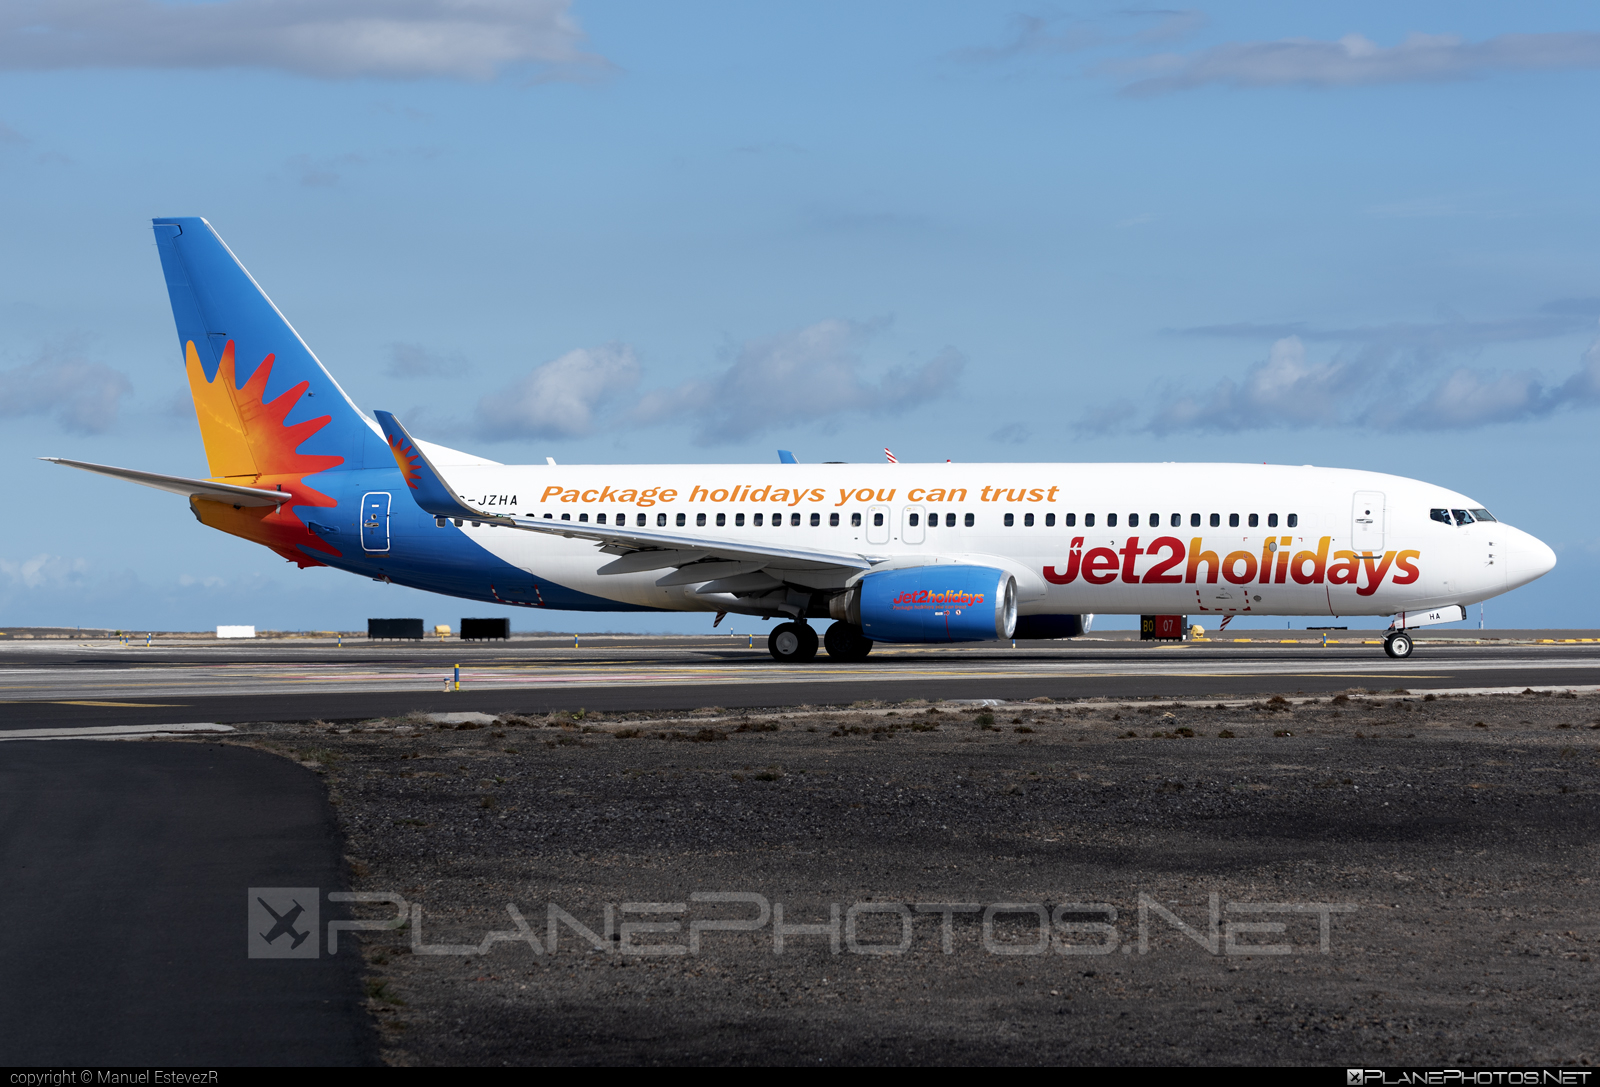 Boeing 737-800 - G-JZHA operated by Jet2holidays #b737 #b737nextgen #b737ng #boeing #boeing737 #jet2holidays